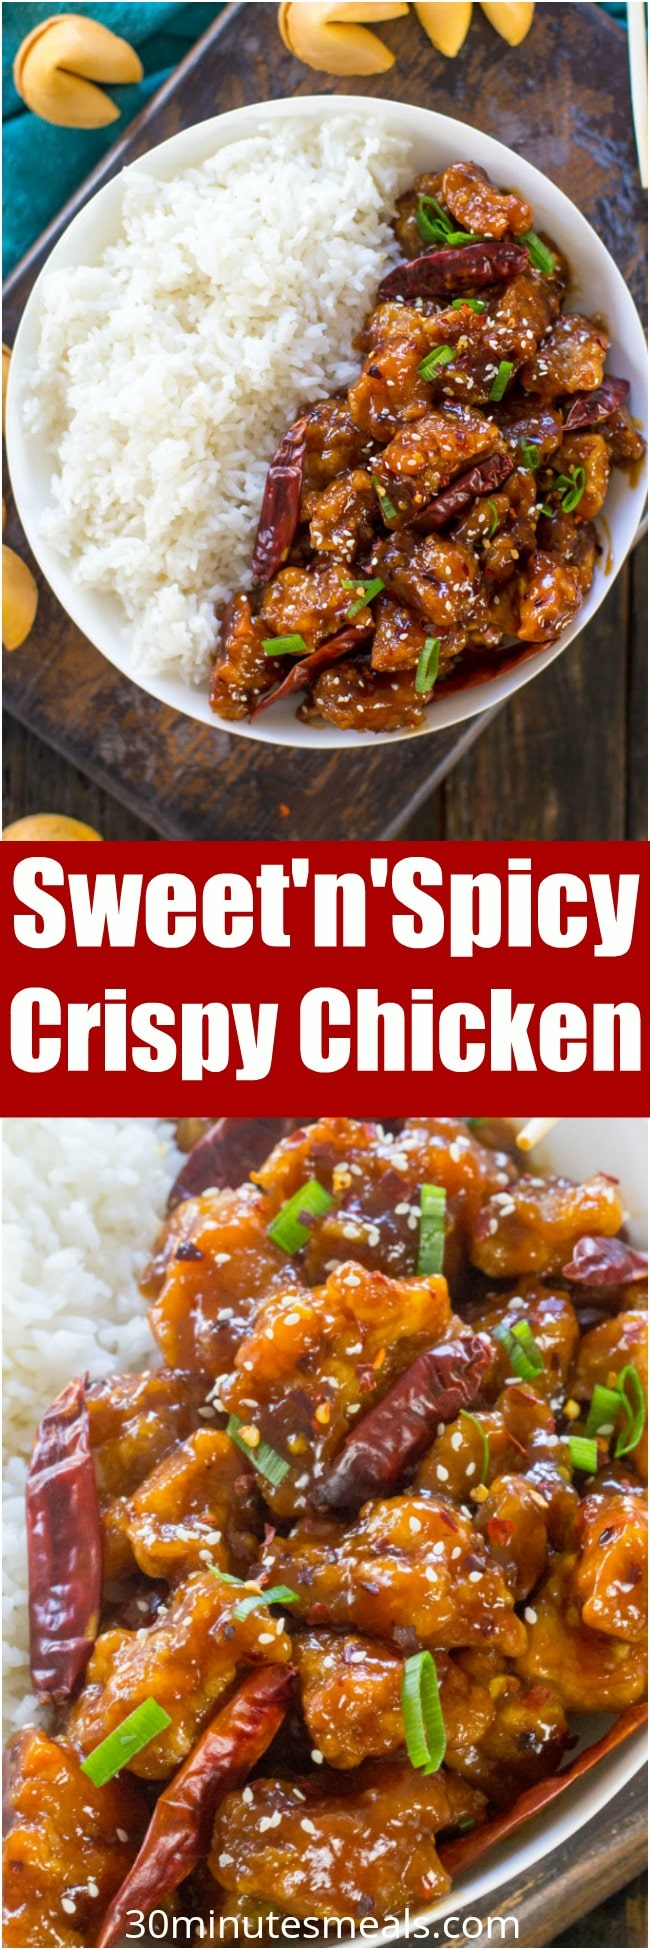 Sweet and Spicy Chicken is perfectly crispy and coated in the most delicious, sweet, sticky and spicy sauce. Make it in one pan in 30 minutes only!